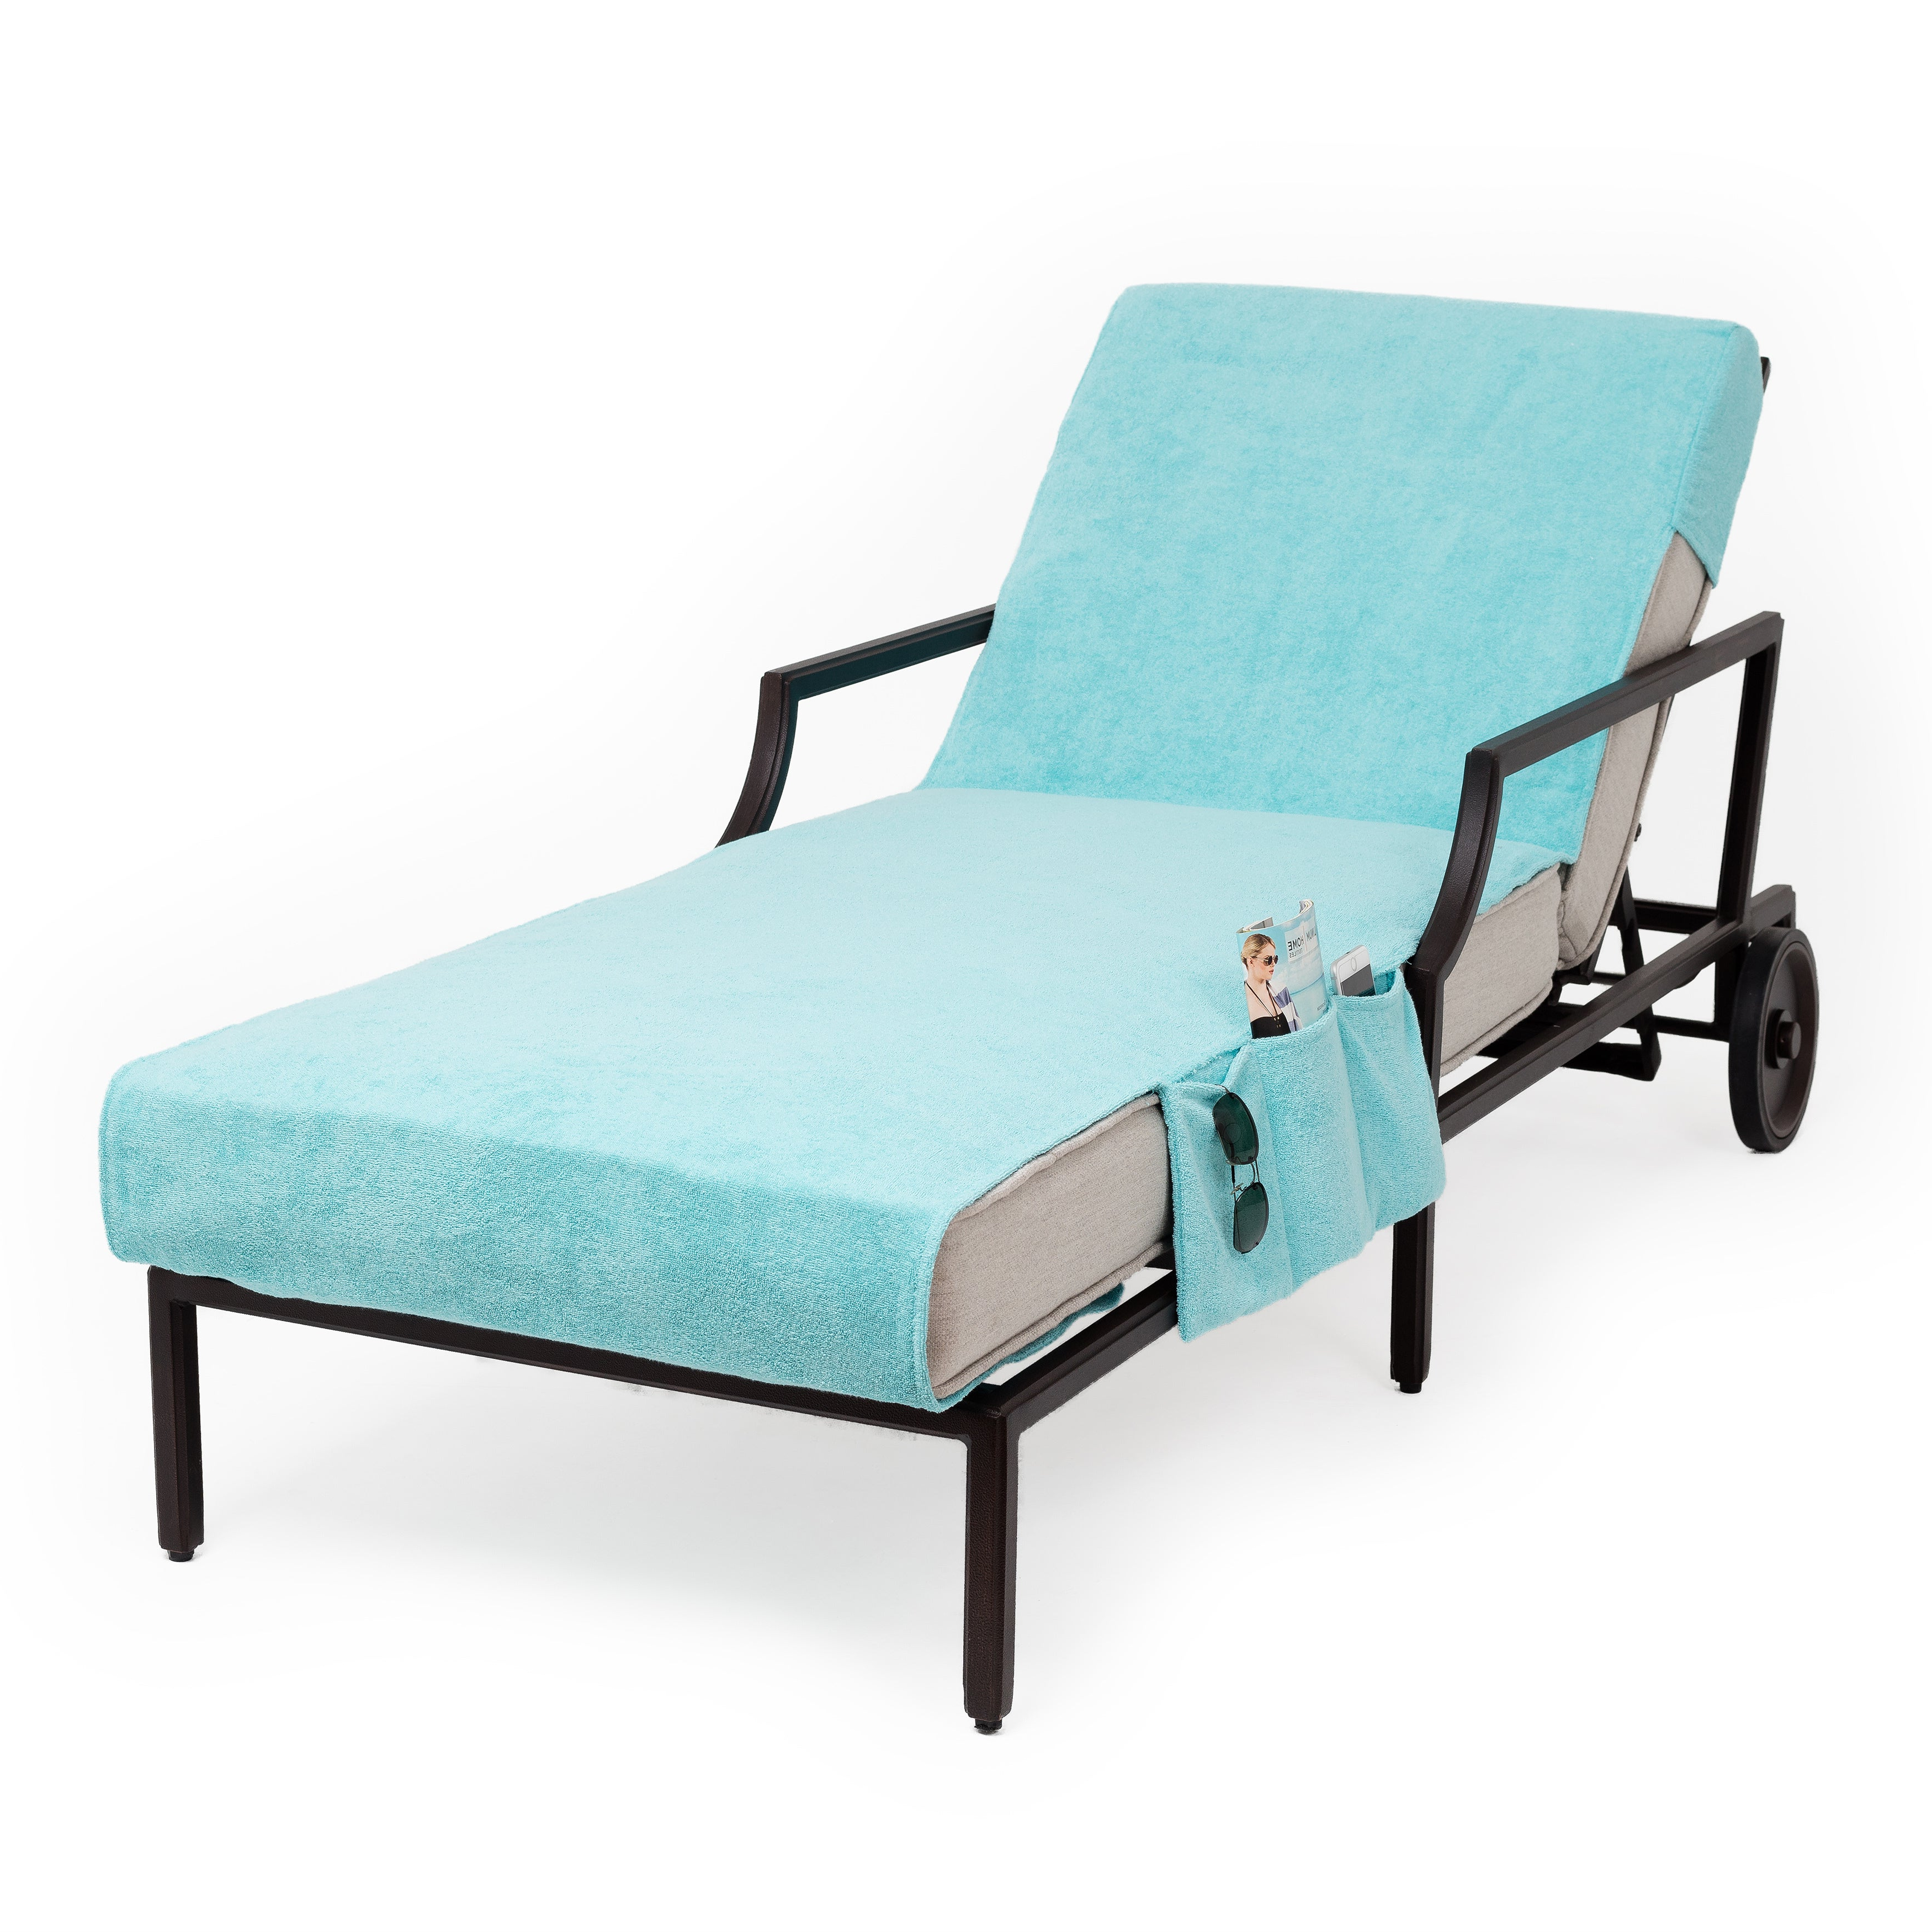 Widely Used Standard Size Chaise Lounge Chairs Inside Authentic Turkish Cotton Aqua Green Towel Cover For Standard Size Chaise  Lounge Chair With Side Pocket (View 2 of 25)